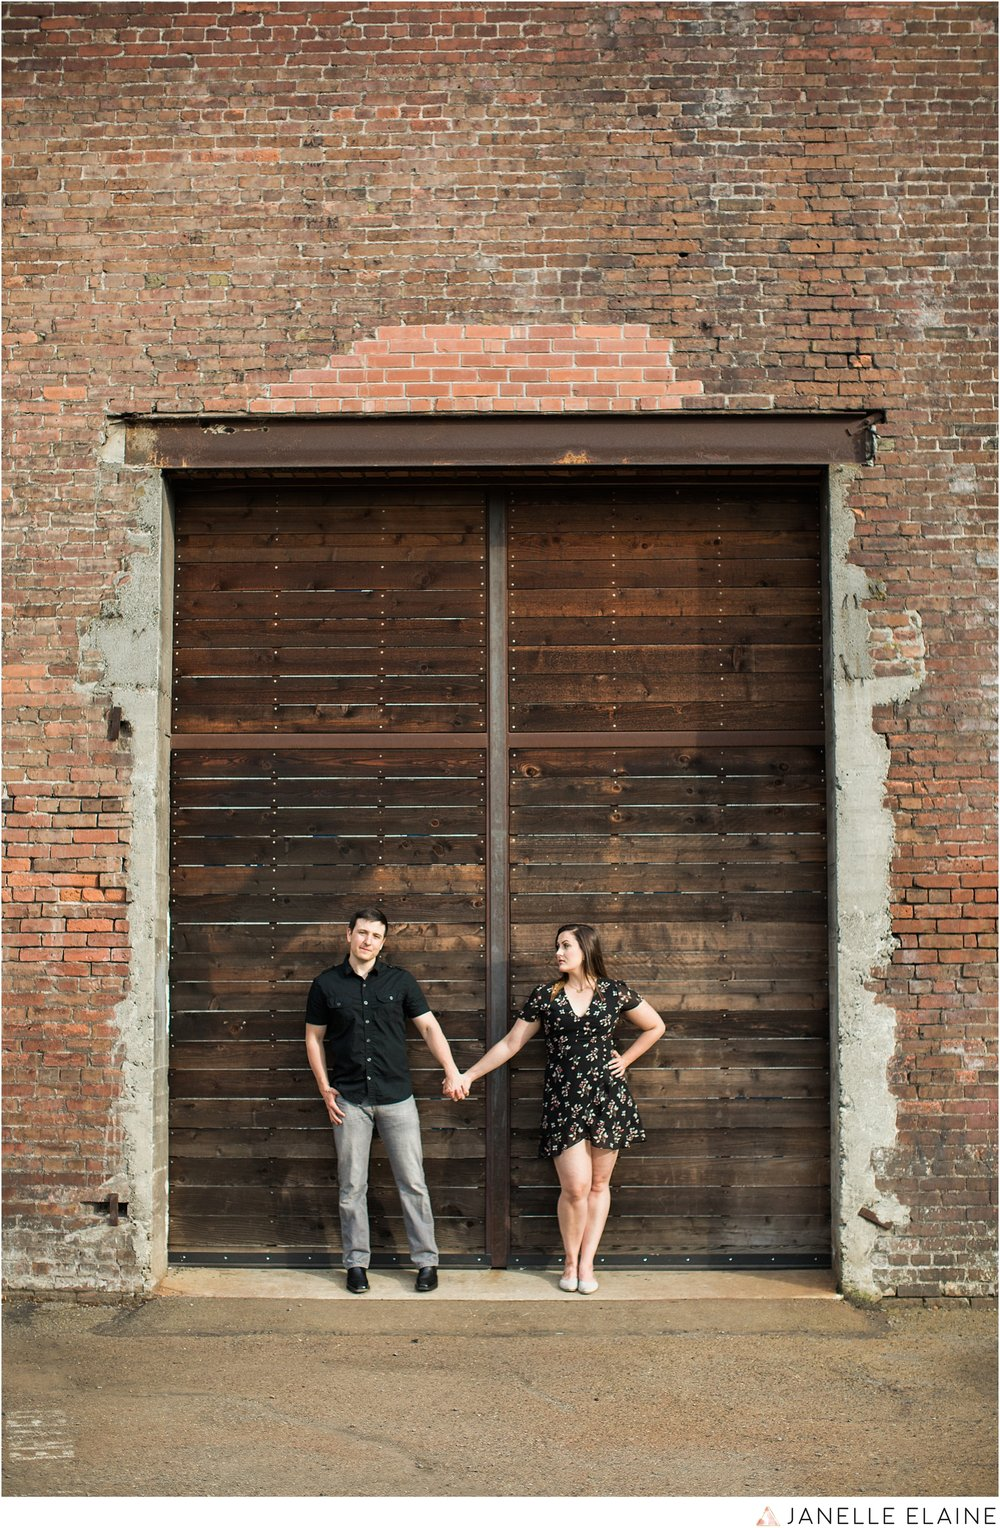 karen ethan-georgetown engagement photos-seattle-janelle elaine photography-100.jpg